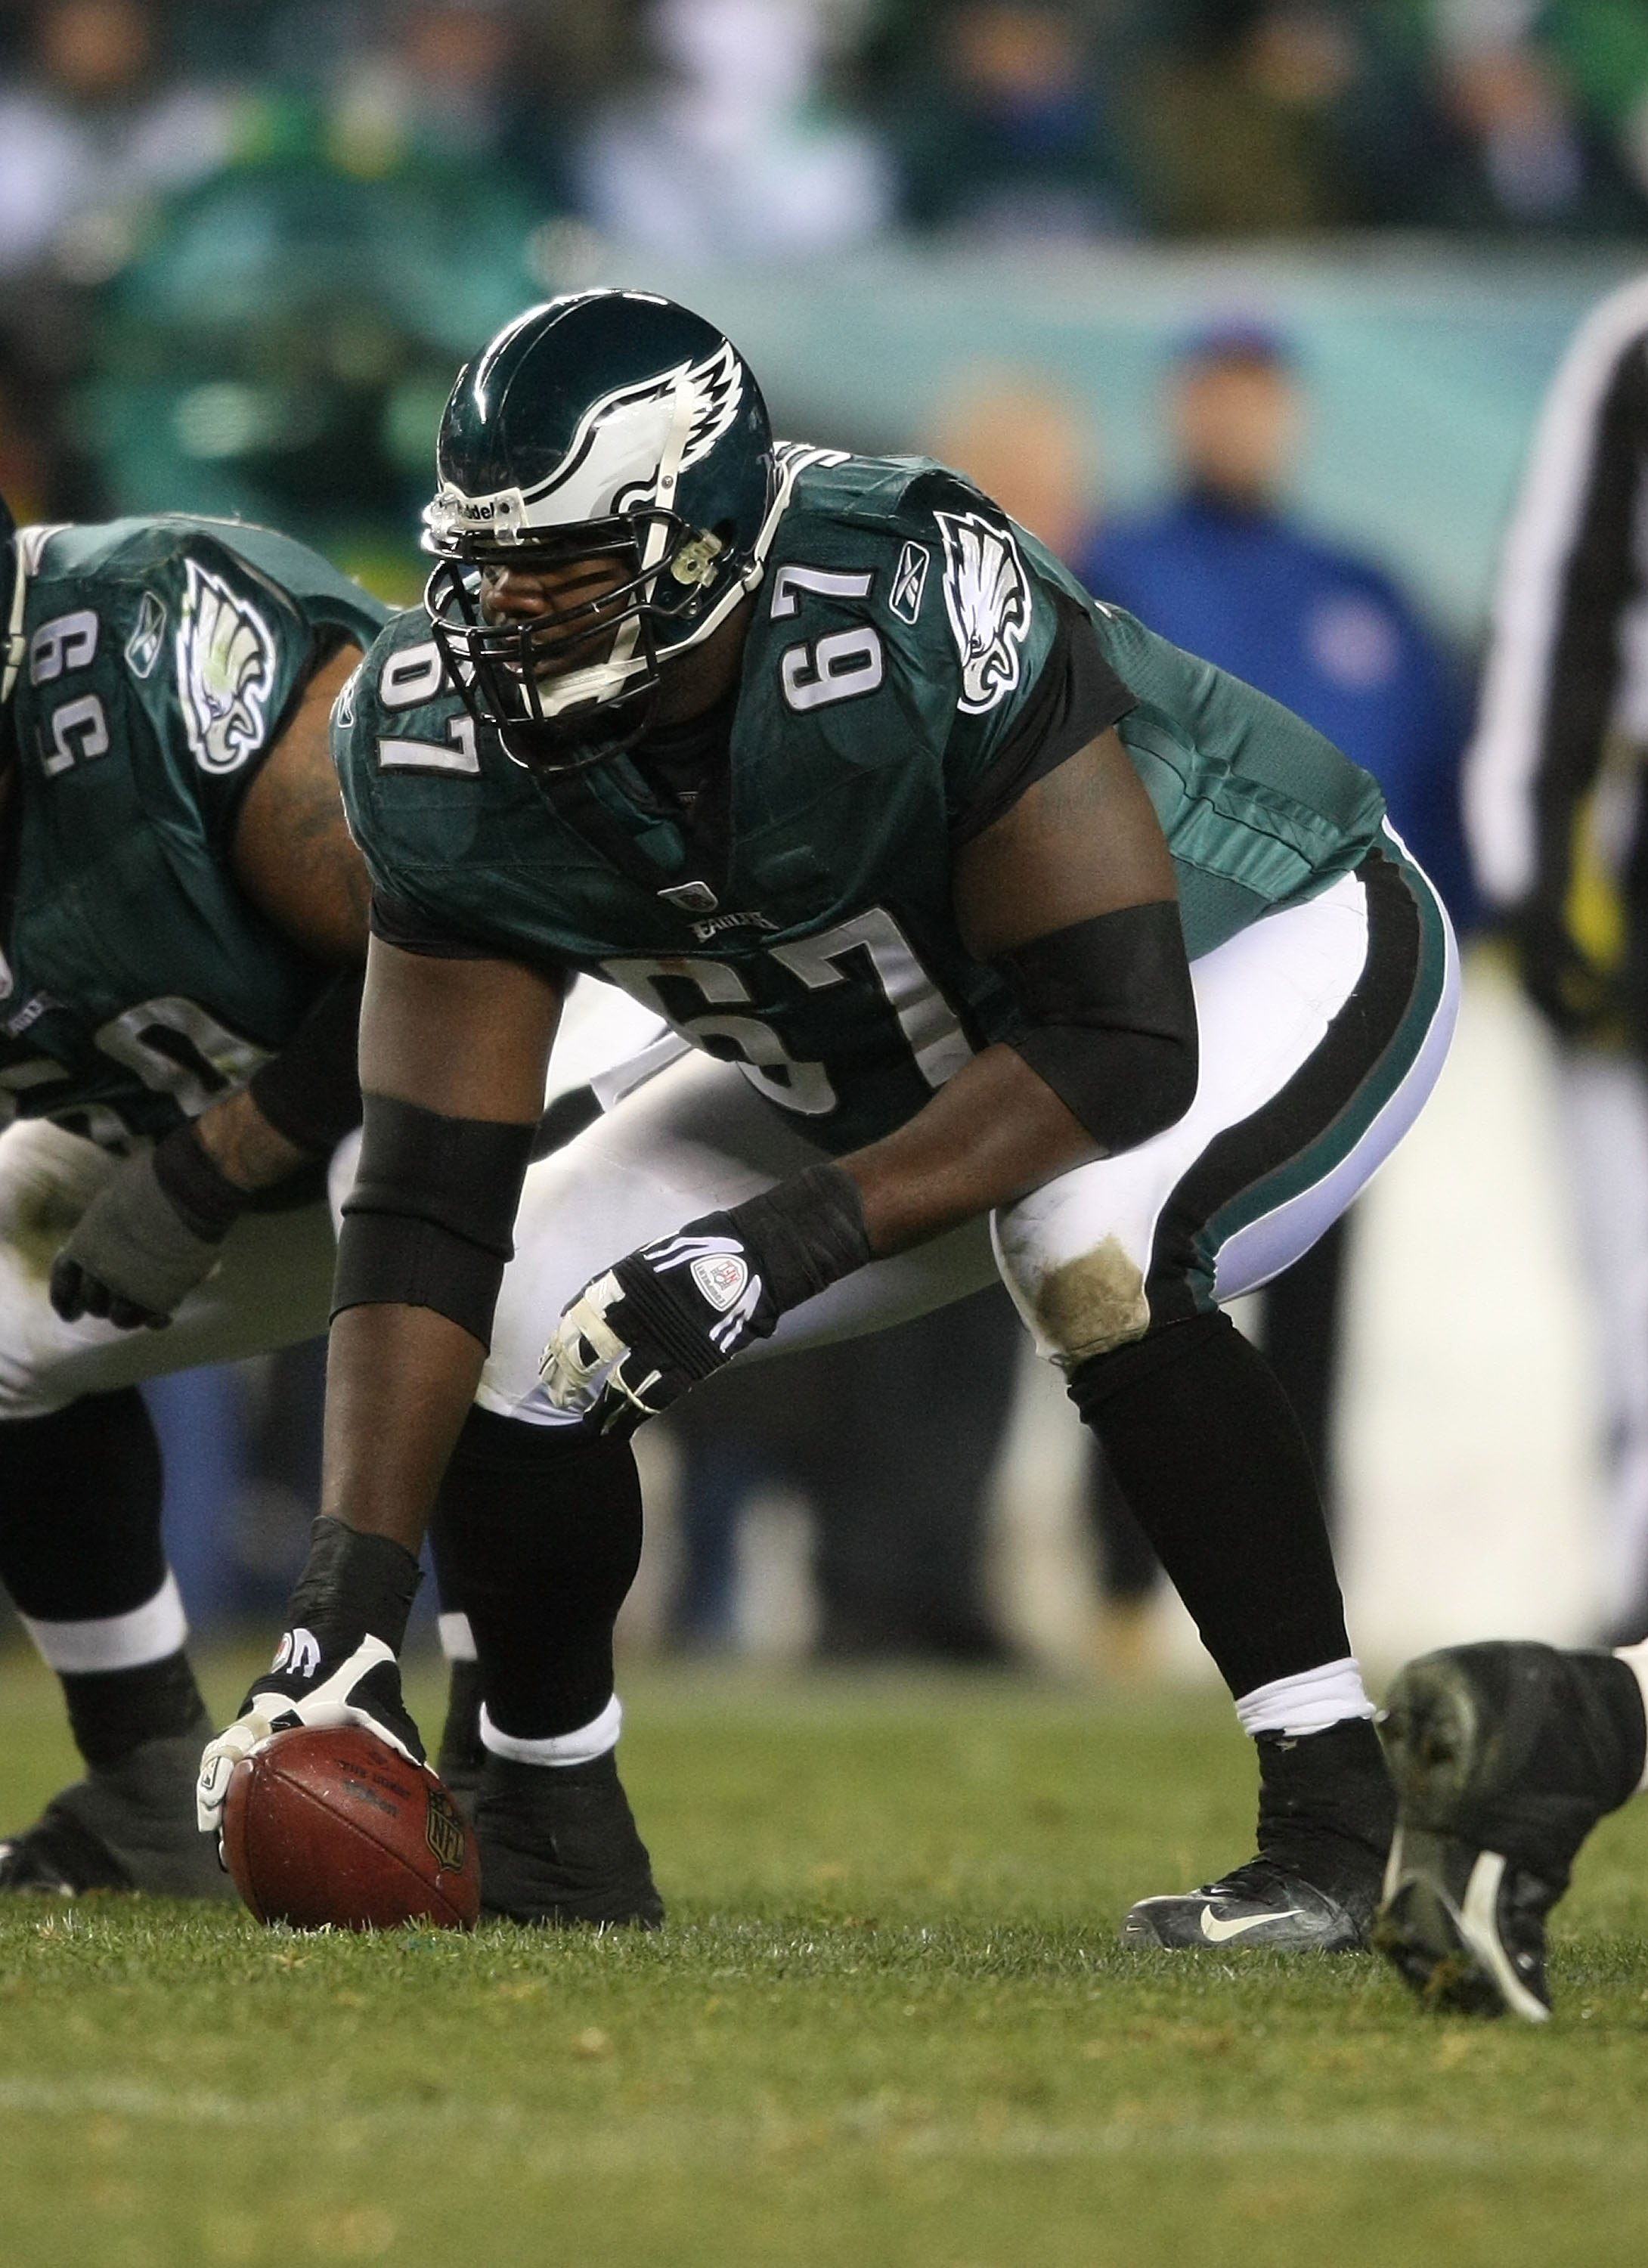 PHILADELPHIA - DECEMBER 20: Jamaal Jackson #67 of the Philadelphia Eagles Eagles lines up against the San Francisco 49ers at Lincoln Financial Field on December 20, 2009 in Philadelphia, Pennsylvania.  (Photo by Nick Laham/Getty Images)